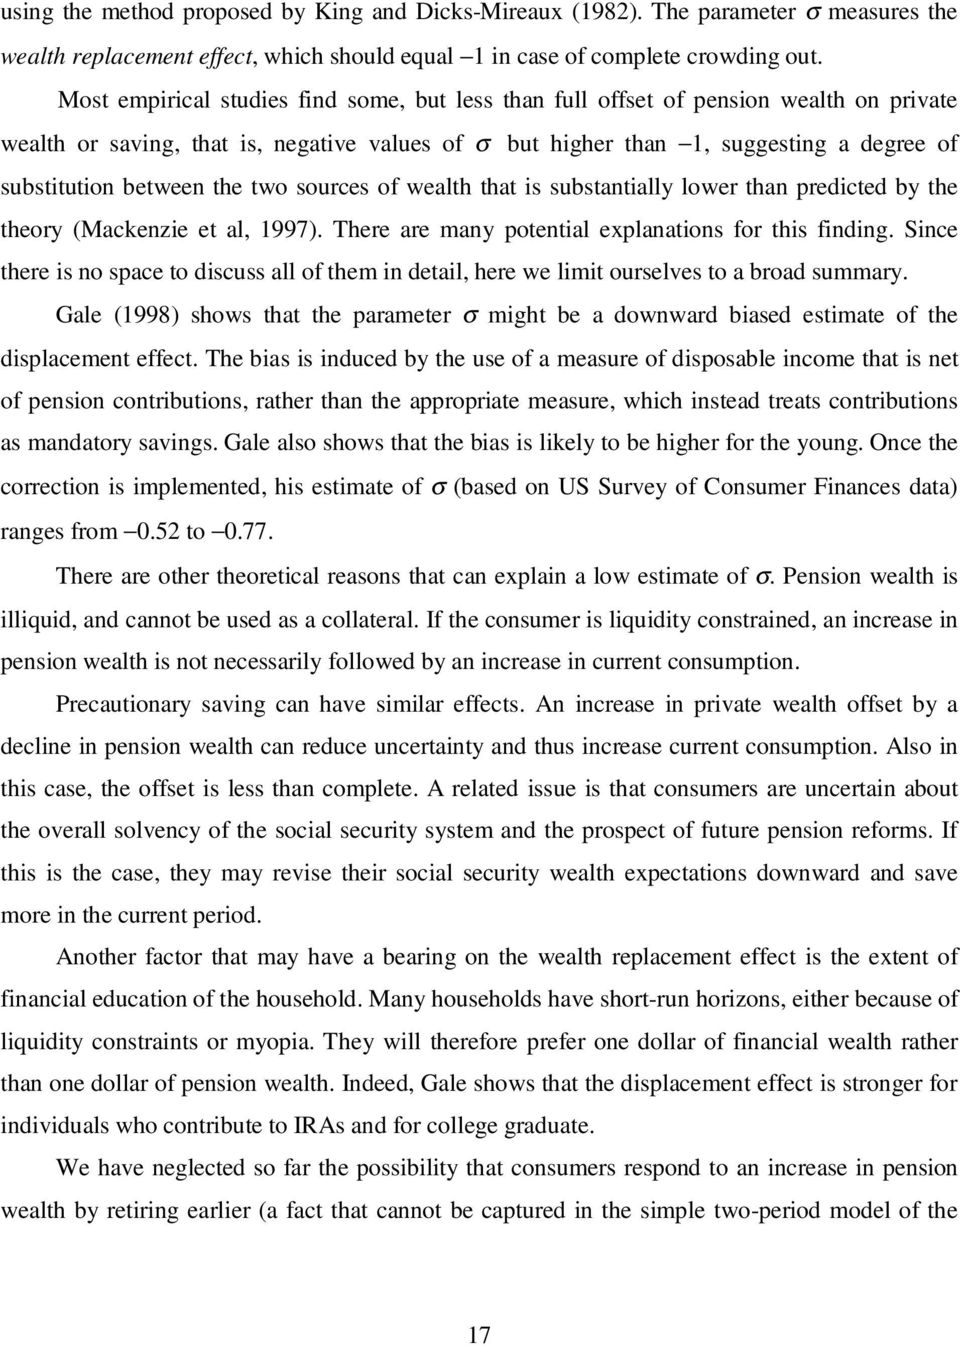 the two sources of wealth that is substantially lower than predicted by the theory (Mackenzie et al, 1997). There are many potential explanations for this finding.